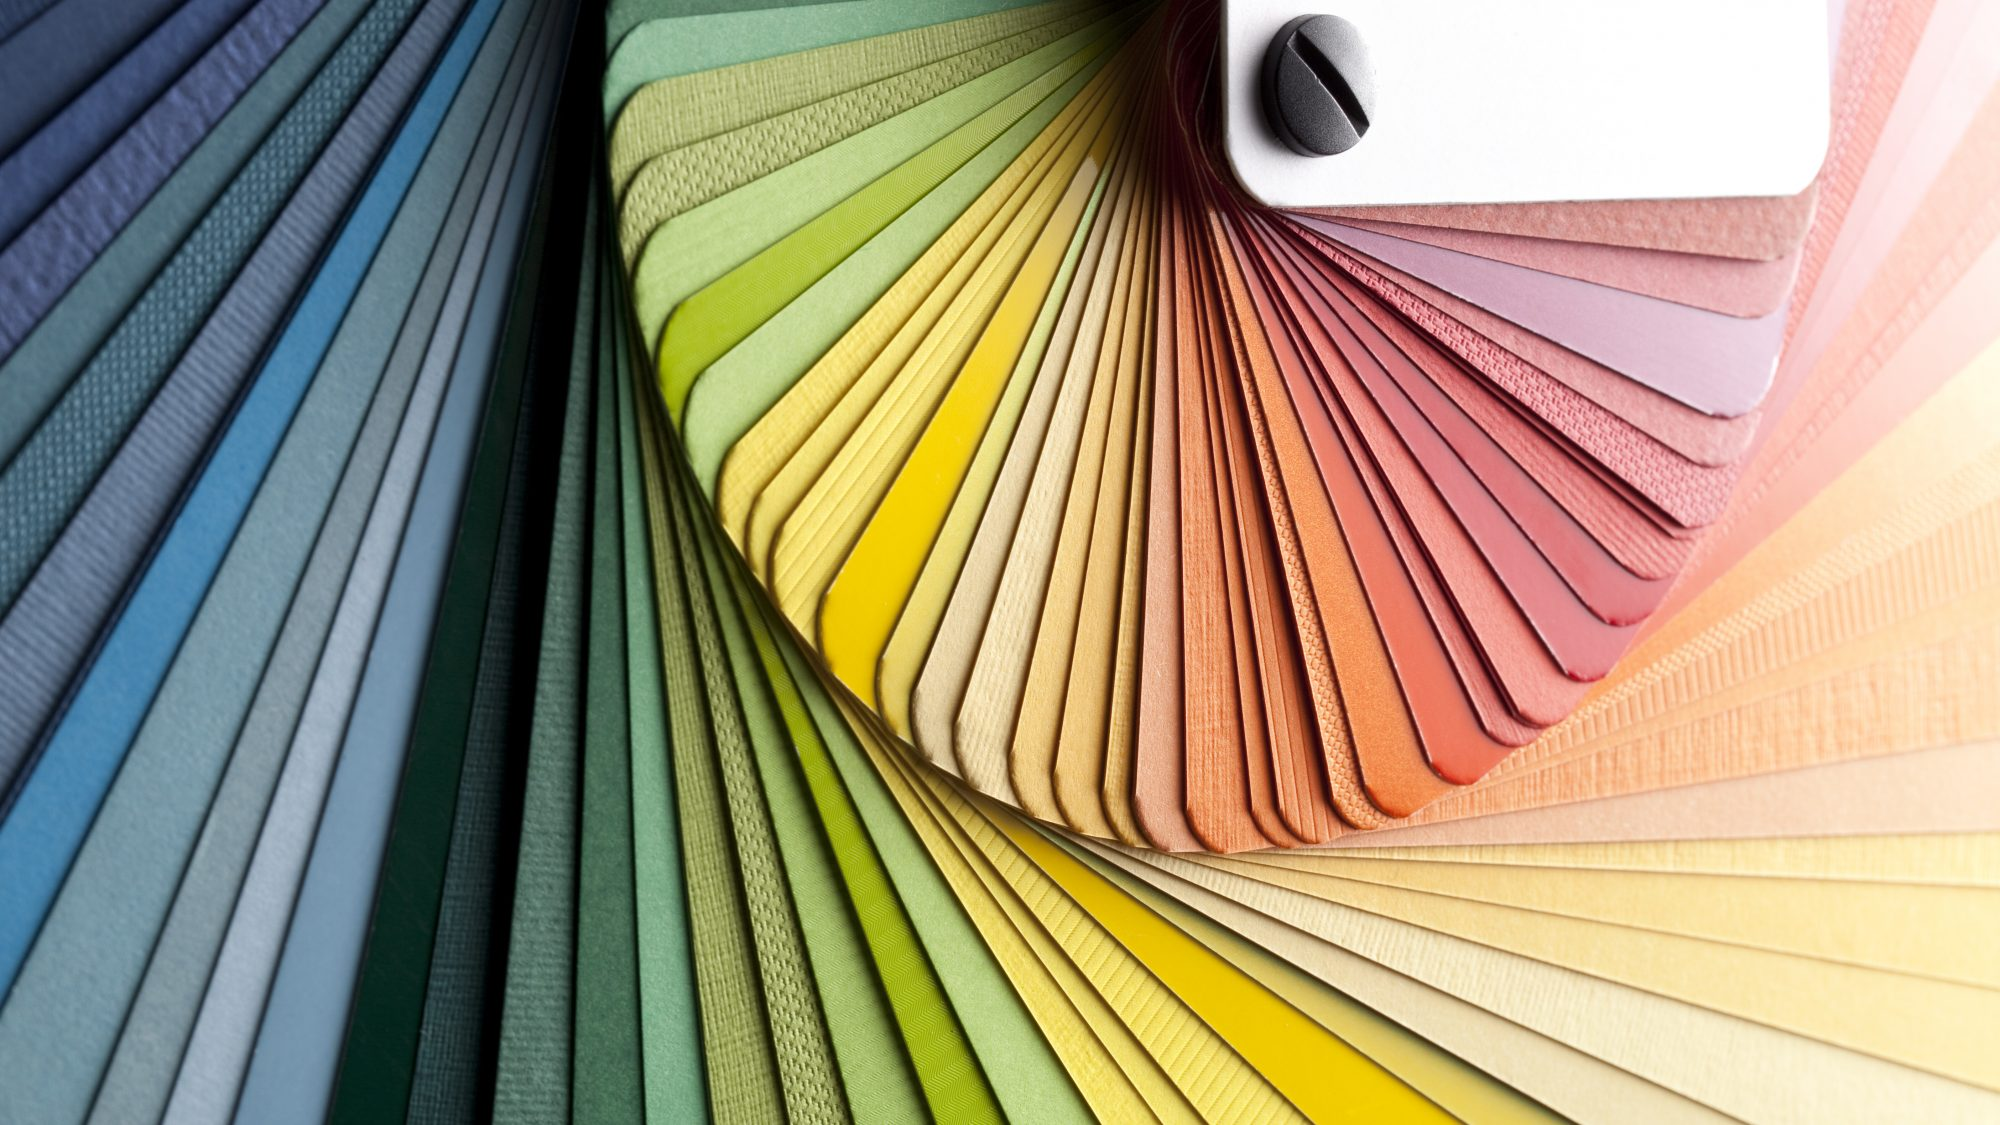 Benjamin Moore Color of the Year 2021, fan deck of colors